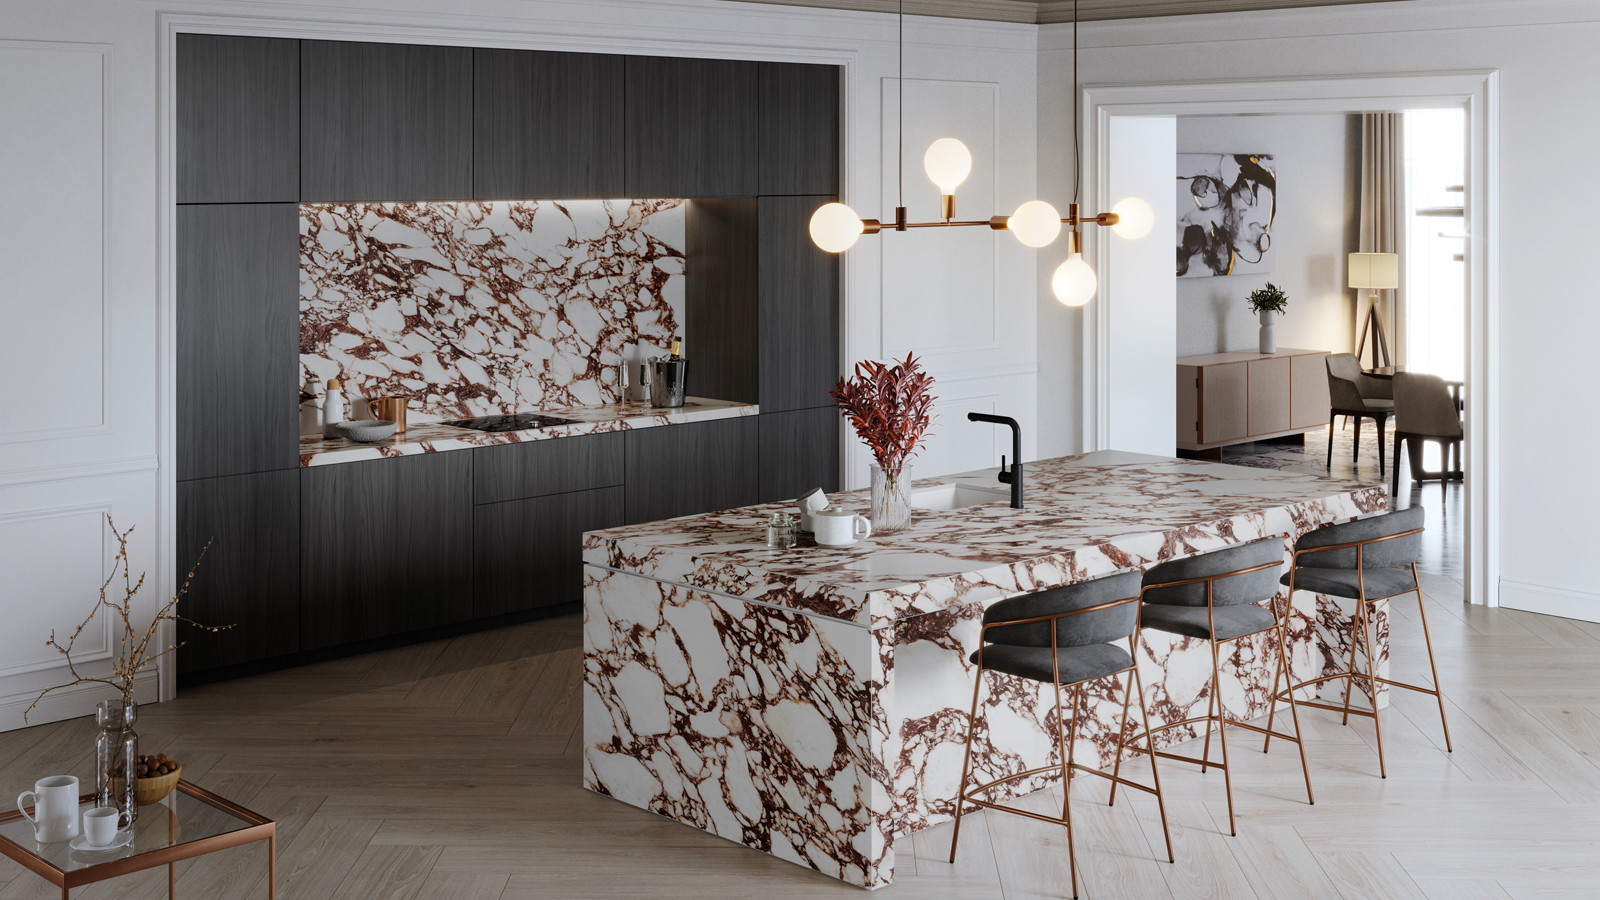 Viola Collection, the reinvention of Calacatta marble with XTONE's resistance